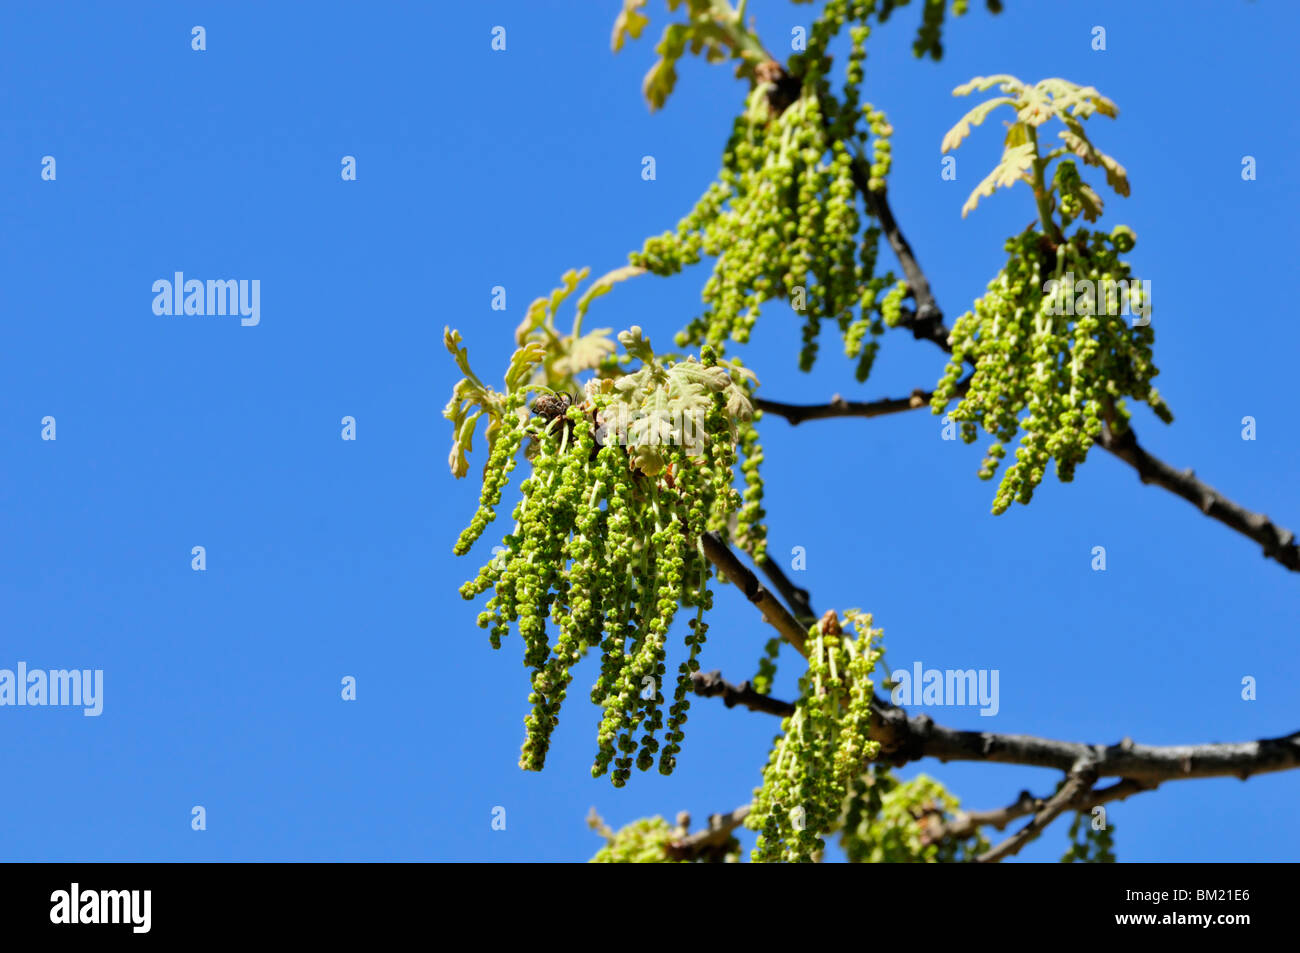 Catkins from a Blackjack Oak, Quercus marilandica, against a bright blue sky in Oklahoma, USA. - Stock Image